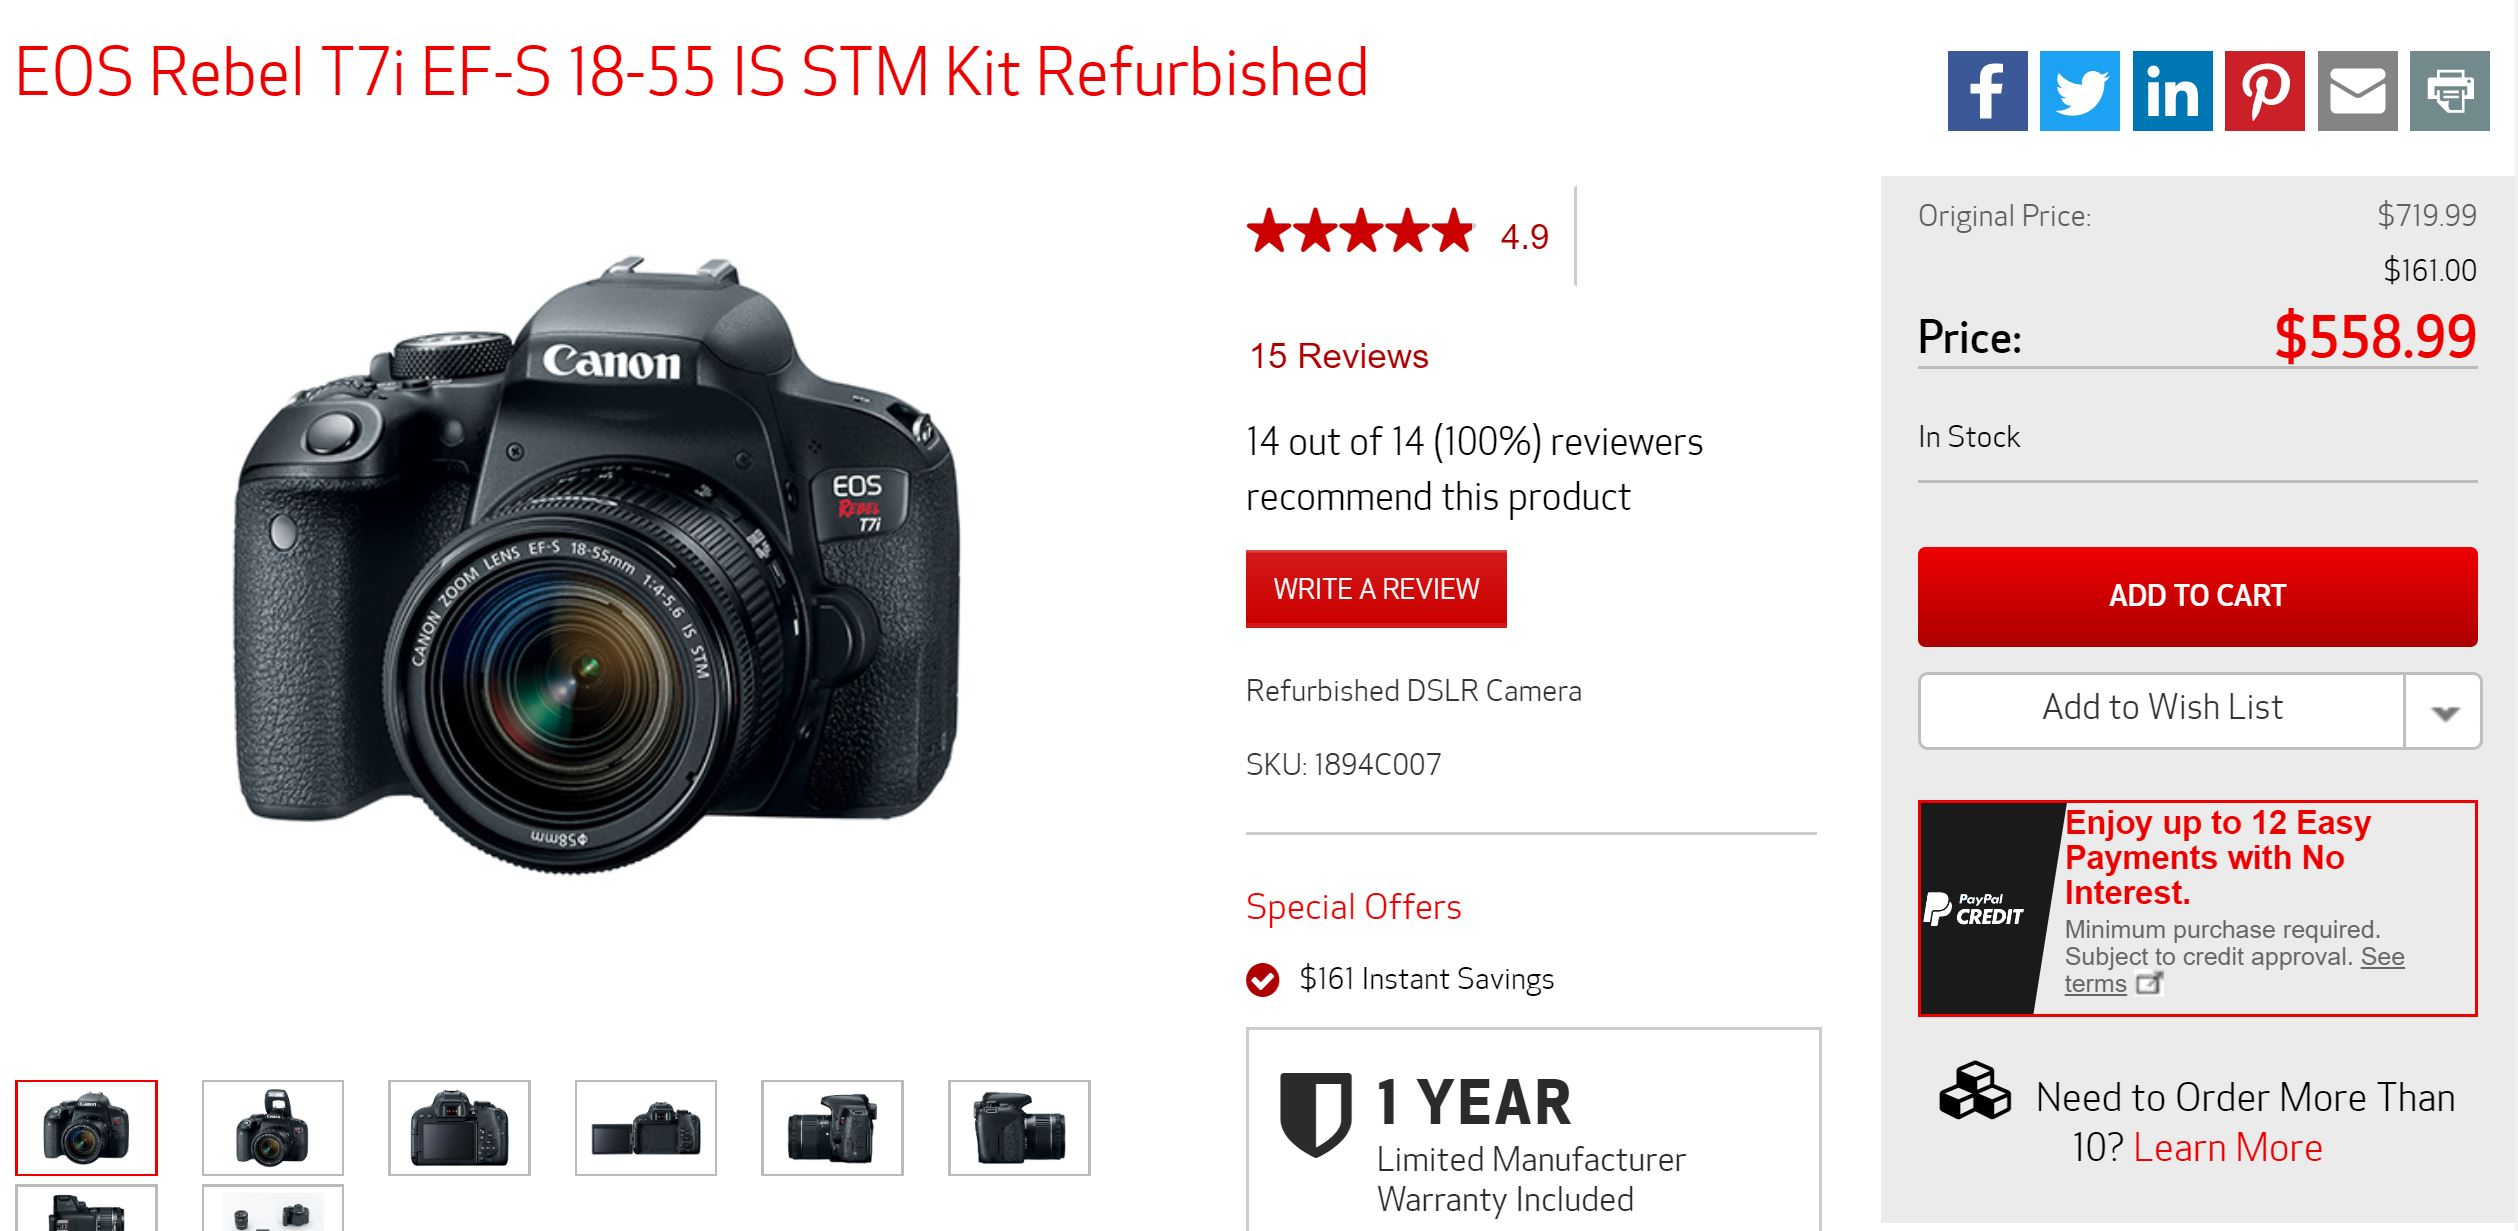 Hot Deal – Refurbished Canon EOS Rebel T7i w/ 18-55mm Lens for $559 !